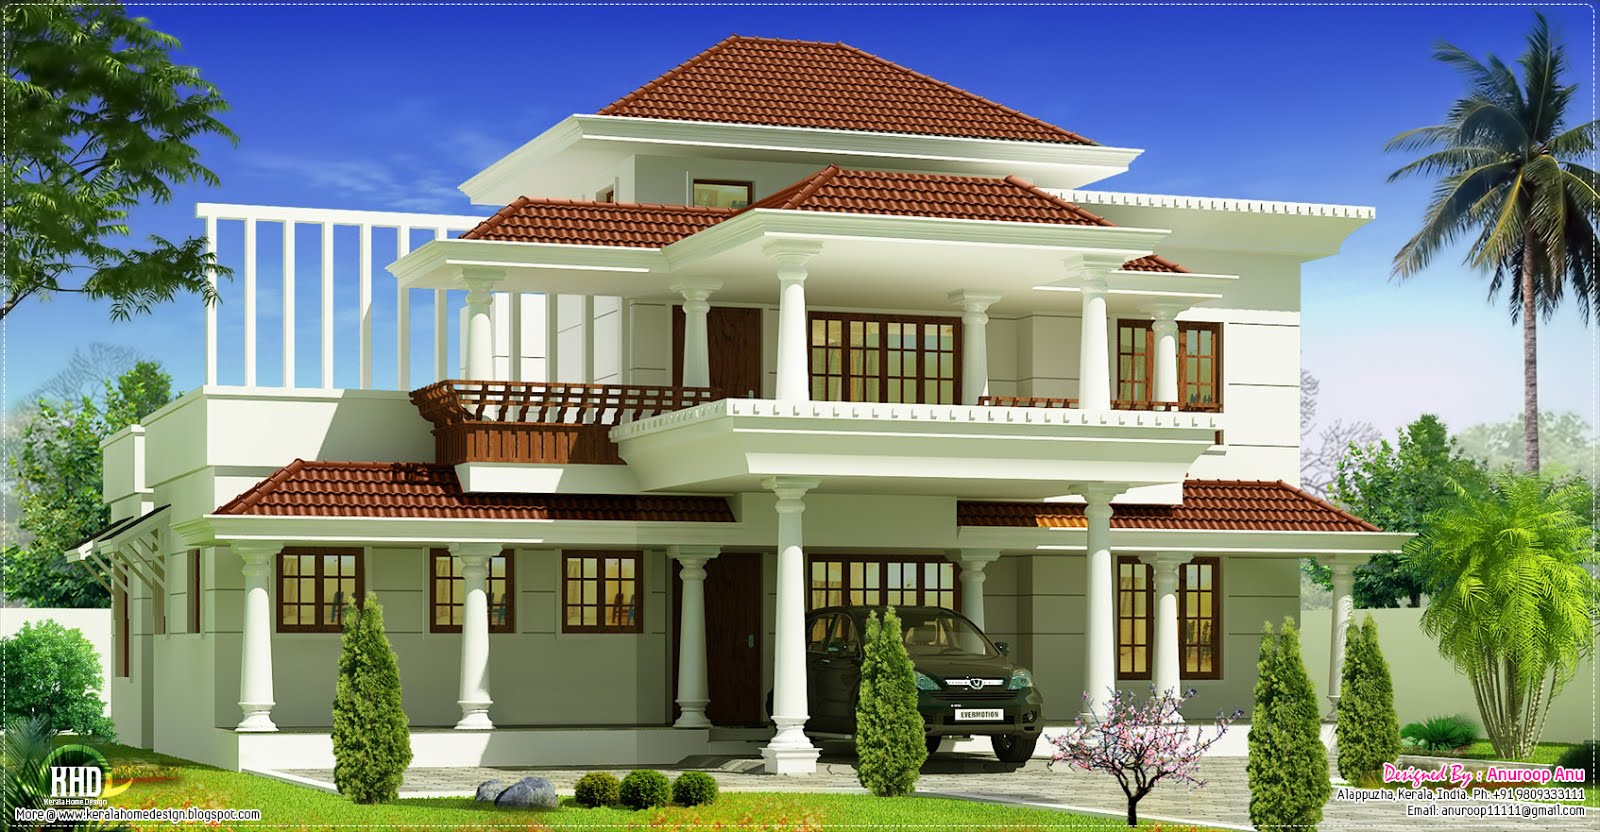 Kerala house models houses plans designs for Kerala home designs com